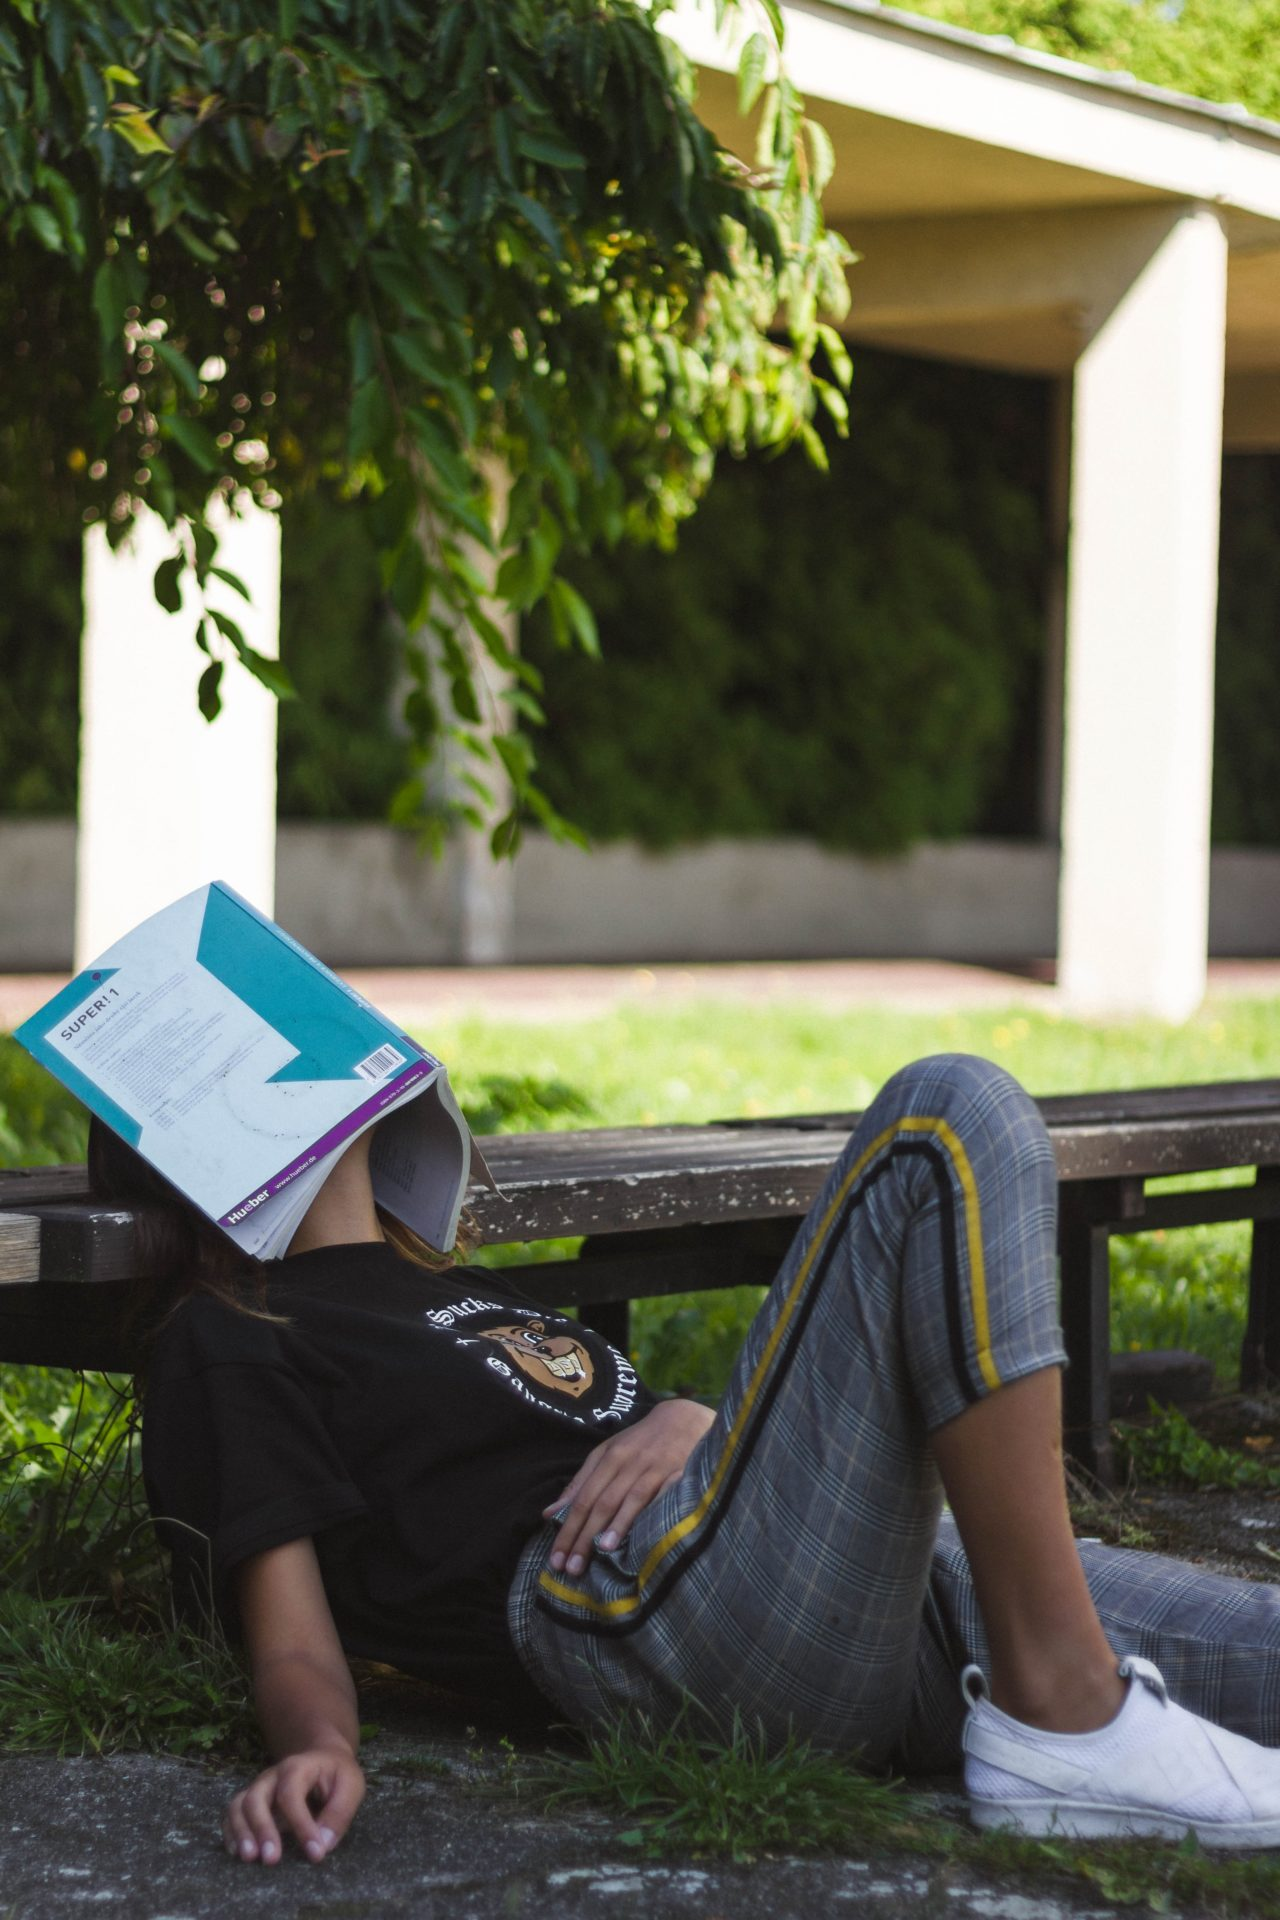 Person sitting with back on bench and book covering face, resting